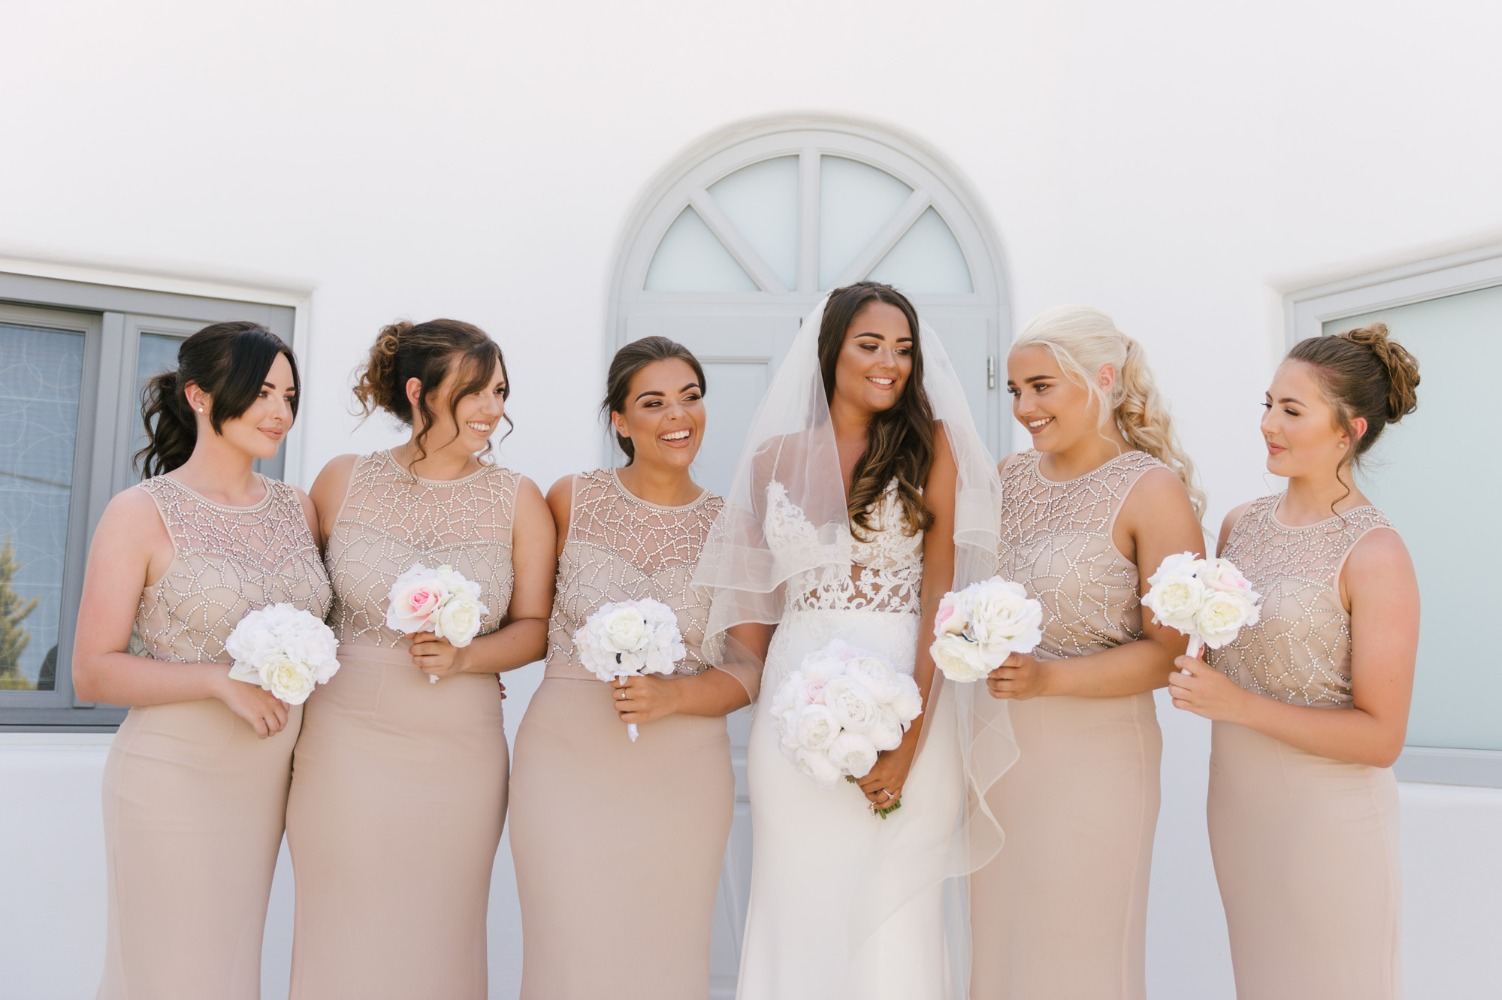 bridesmaids in sparkling champagne colored dresses